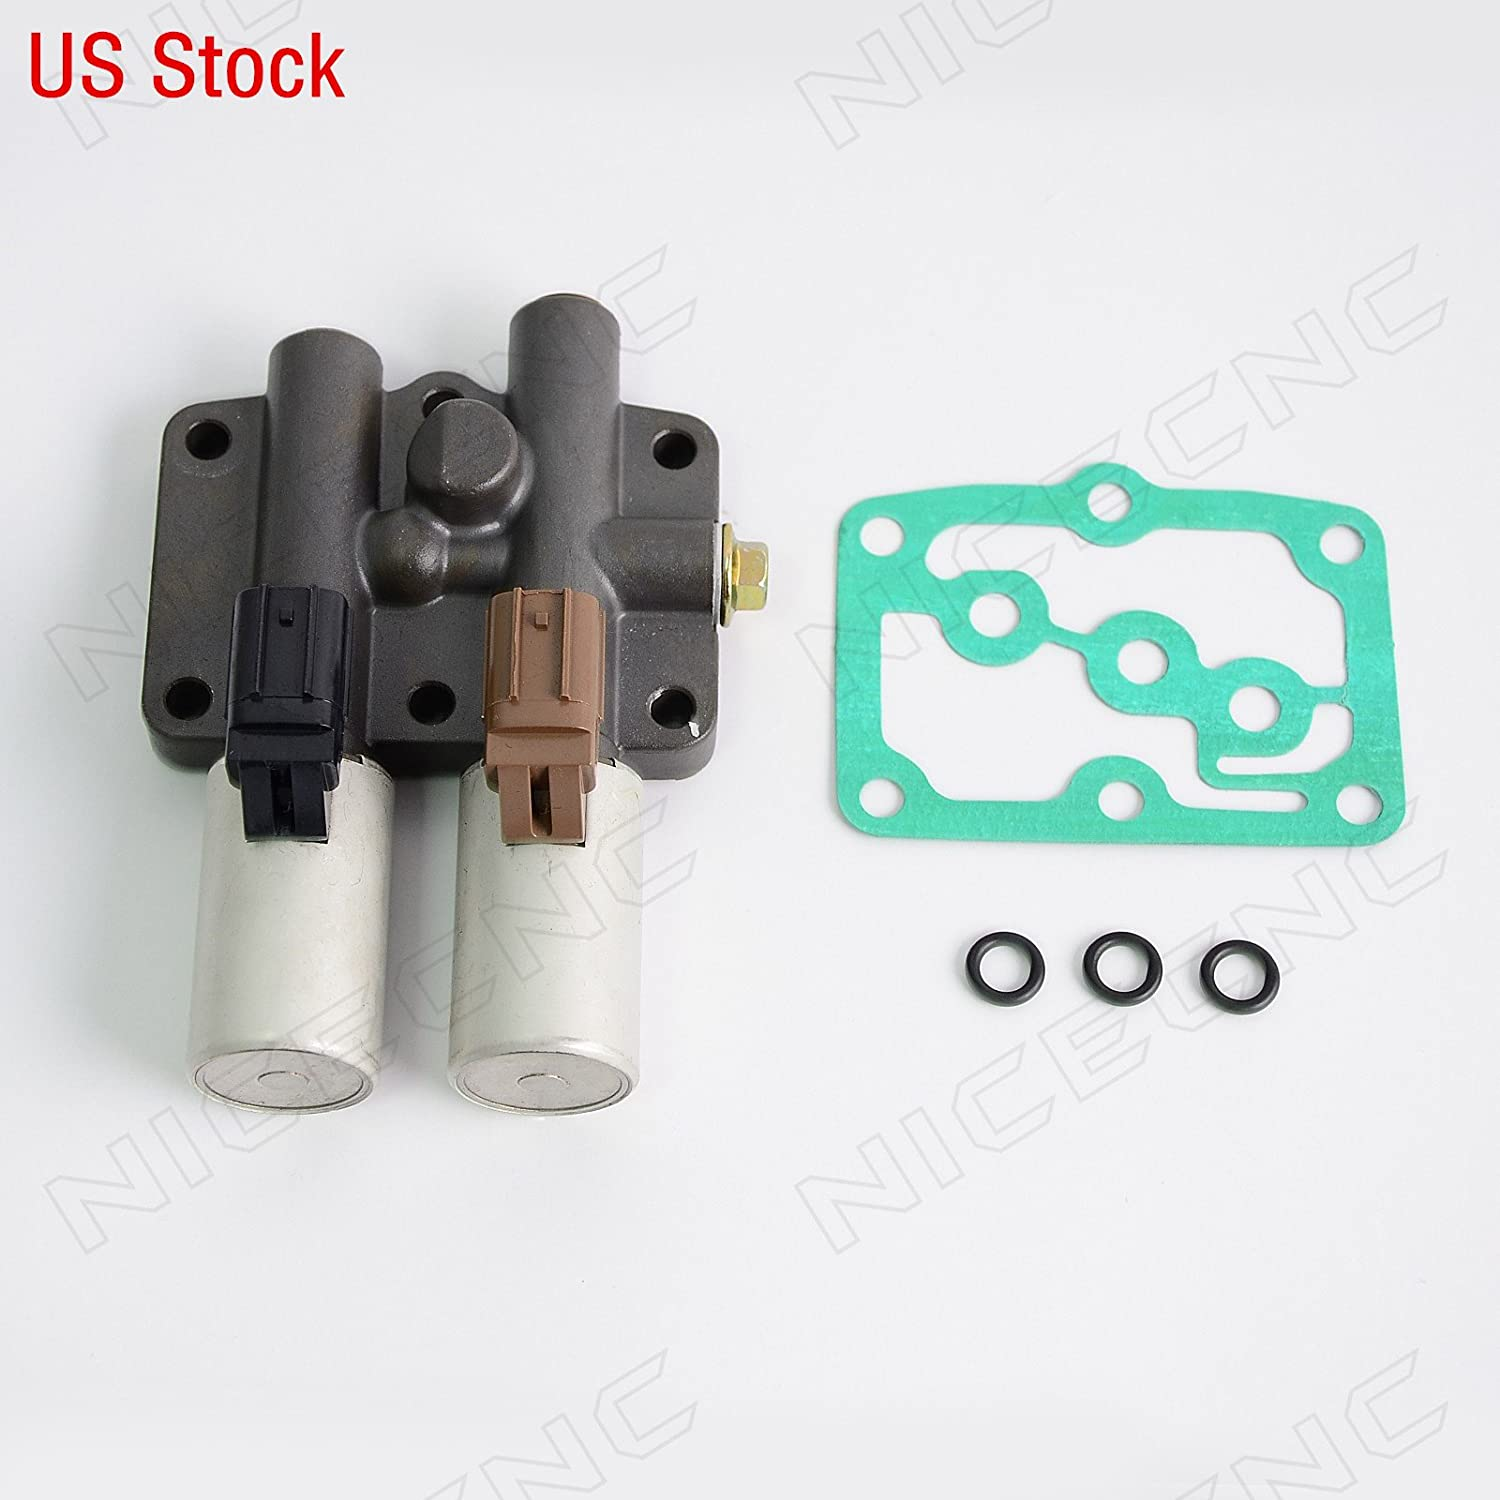 NICECNC Dual Linear Solenoid for Honda Accord 4 Cyl 6 Cyl 1998-2002/2007 Odyssey Pilot 2003-2007 Prelude 1997-2001 Acura 2.3/3.0 CL 1998-1999 MDX 2001-2002 3.2 CL/TL